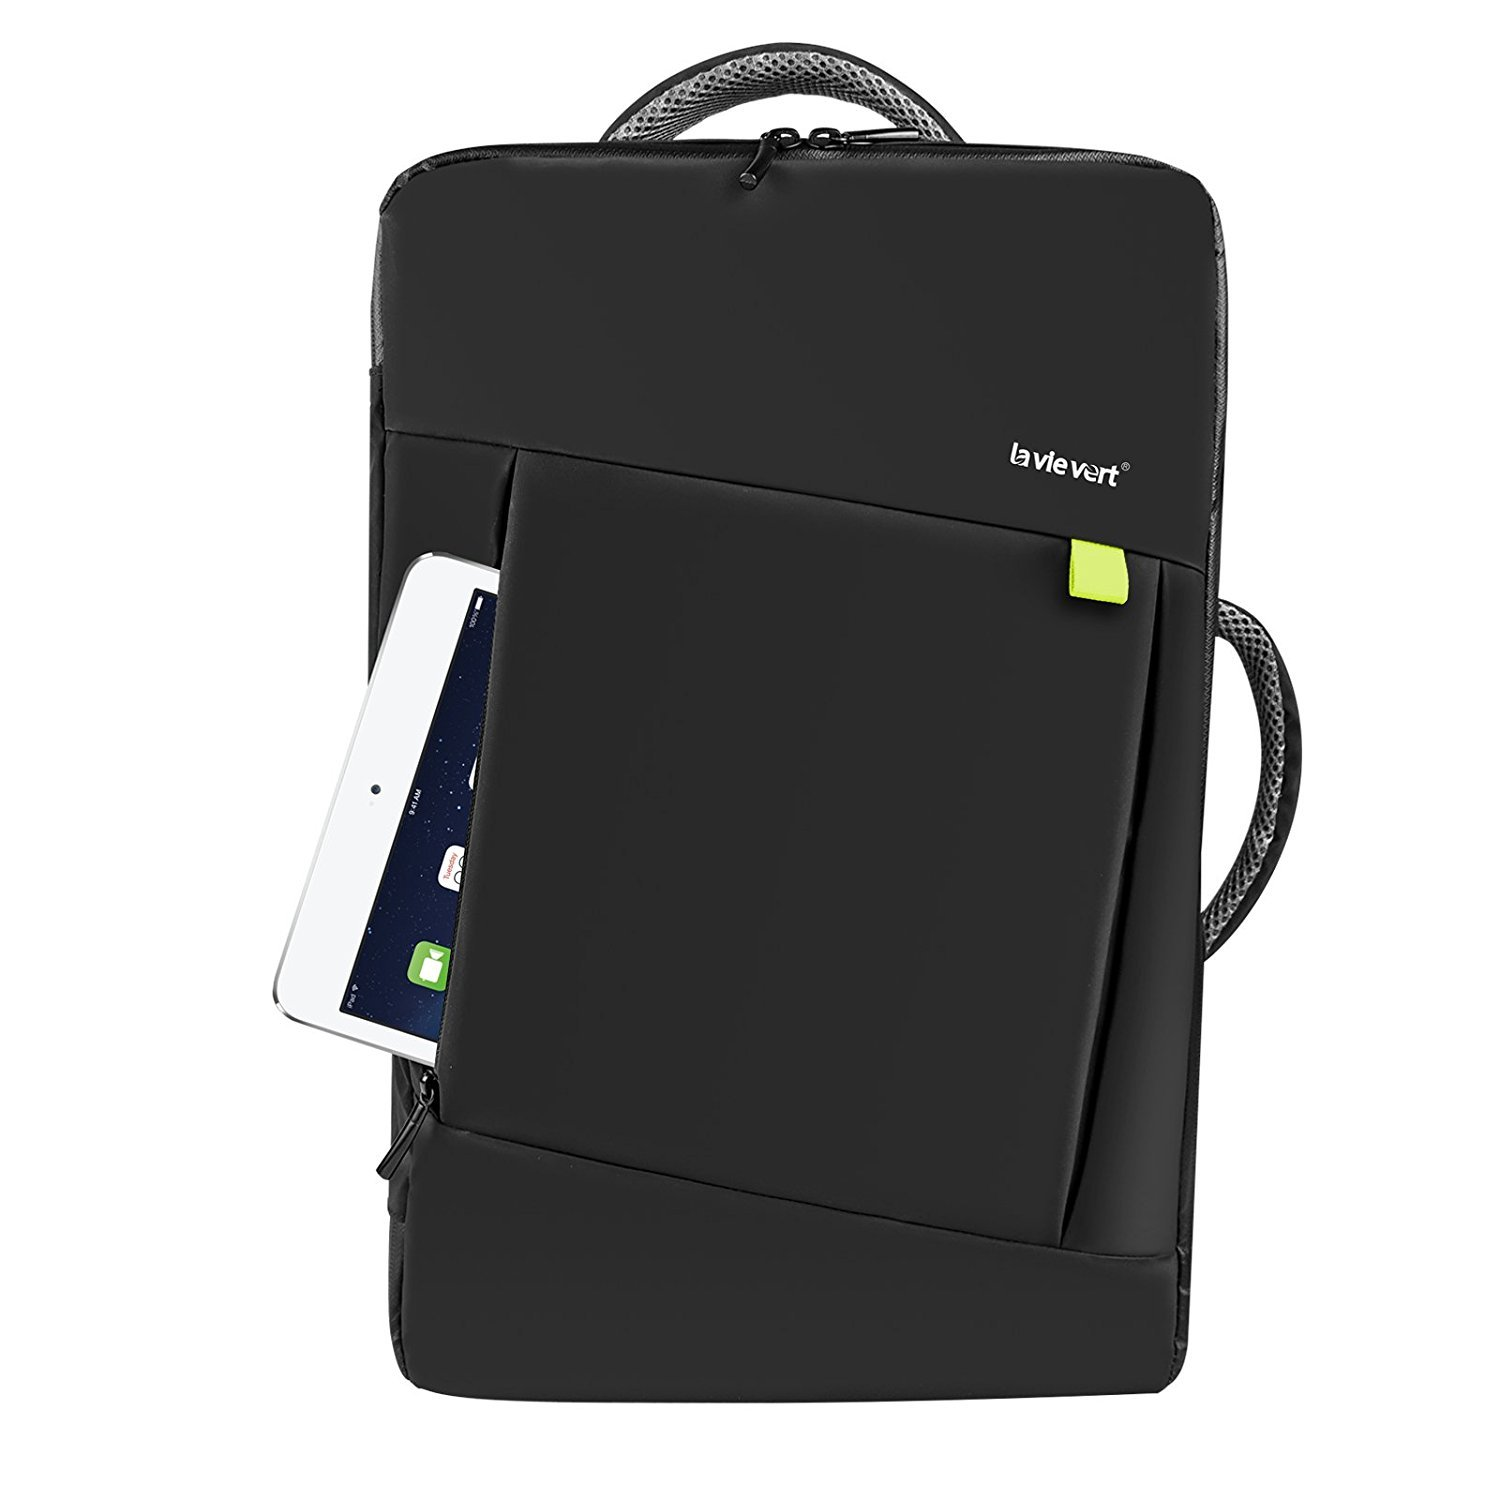 ... Backpack Laptop Convertible Briefcase Tote Bag Business Travel Luggage  Carrier School Knapsack For Macbook Notebook Tablet PC Ultrabook Up to 17  Inch d8878b62b0cef